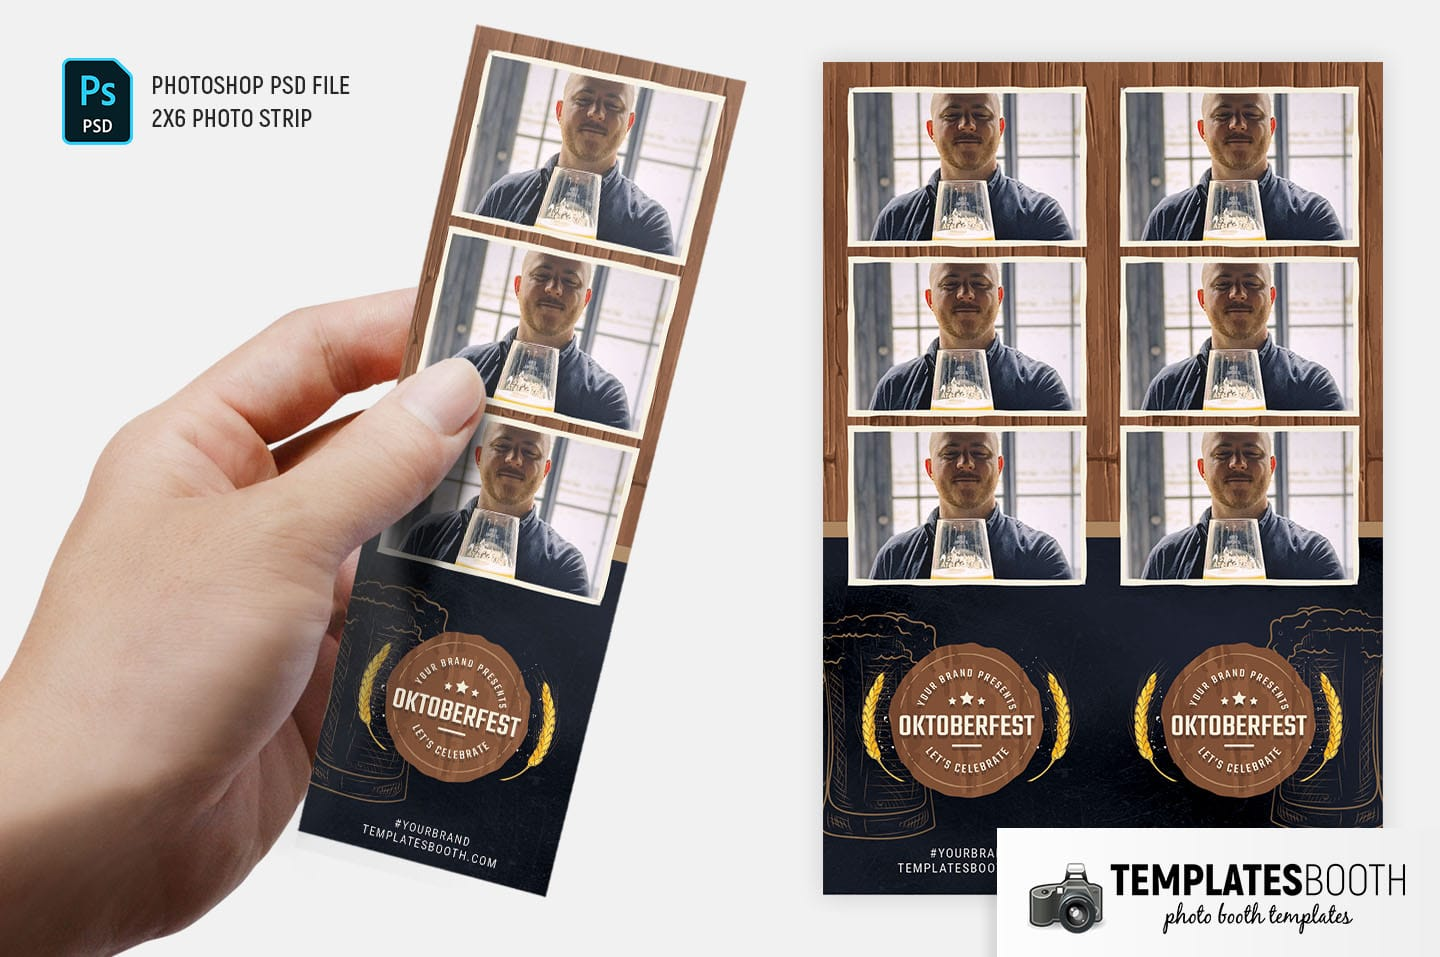 Oktoberfest Photo Booth Template (2x6 photo strip)